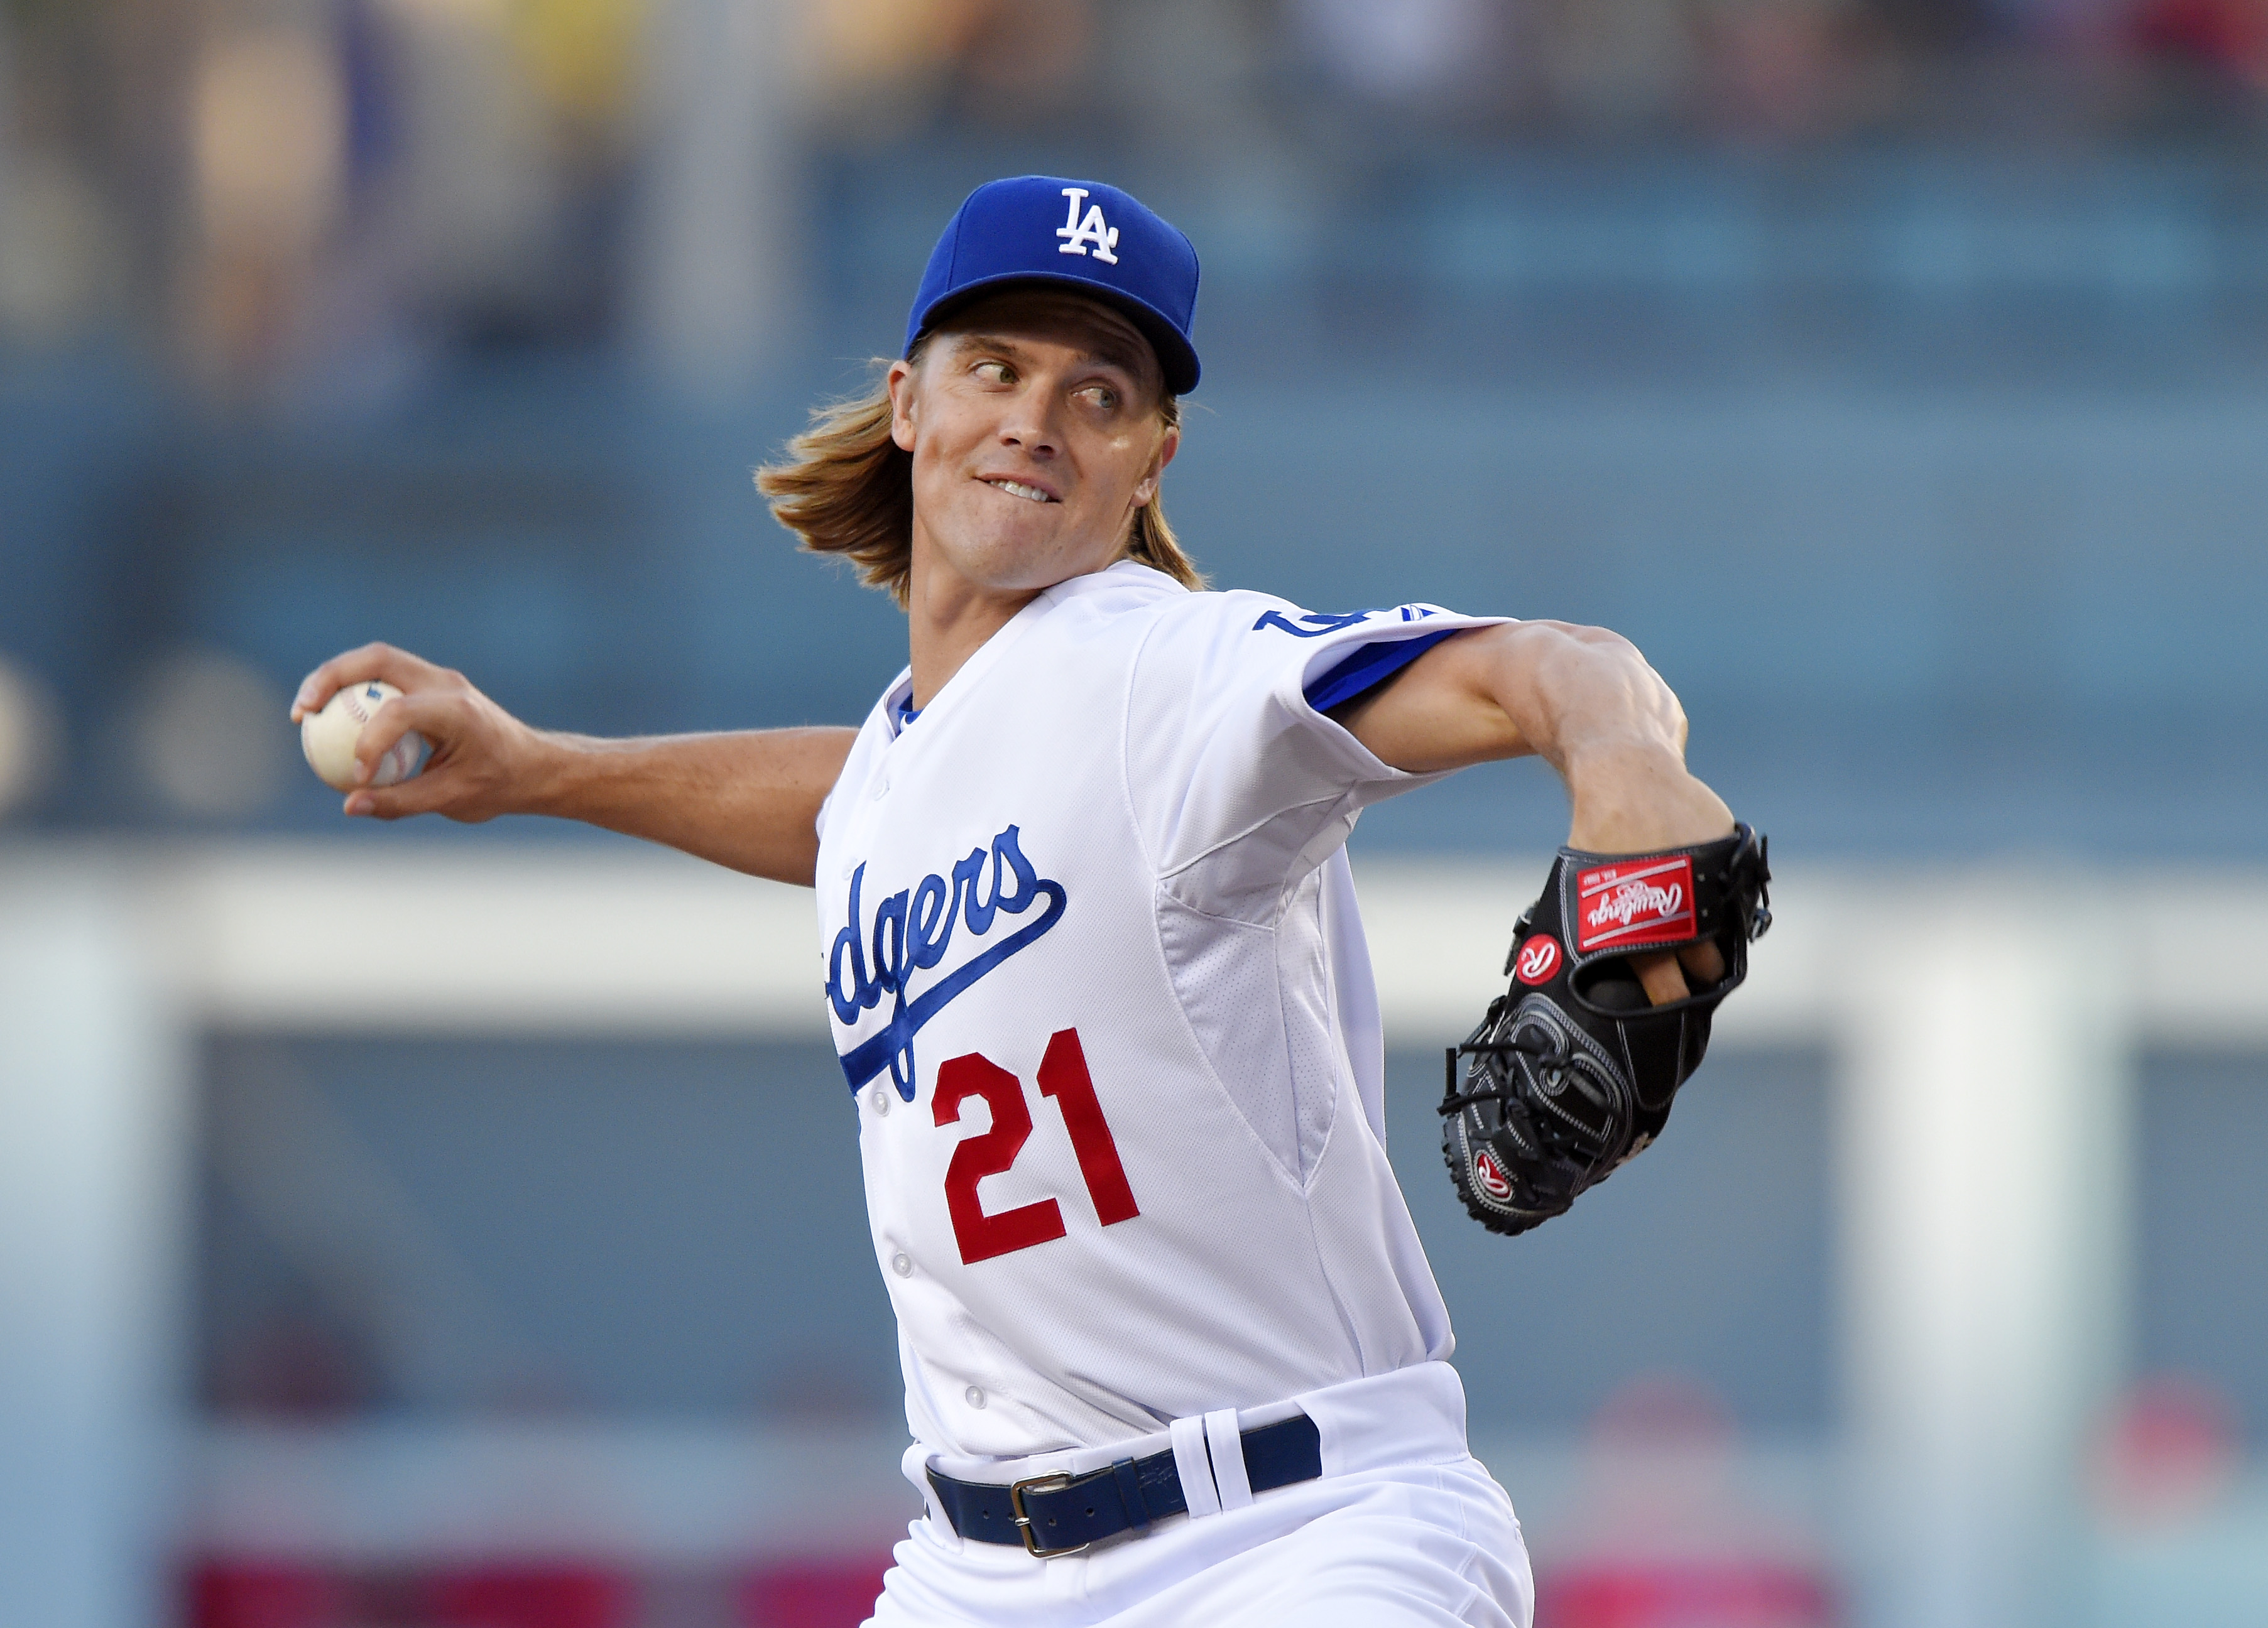 Los Angeles Dodgers' Zack Greinke pitches during the first inning of a baseball game against the Philadelphia Phillies, Thursday, July 9, 2015, in Los Angeles. (AP Photo/Mark J. Terrill)